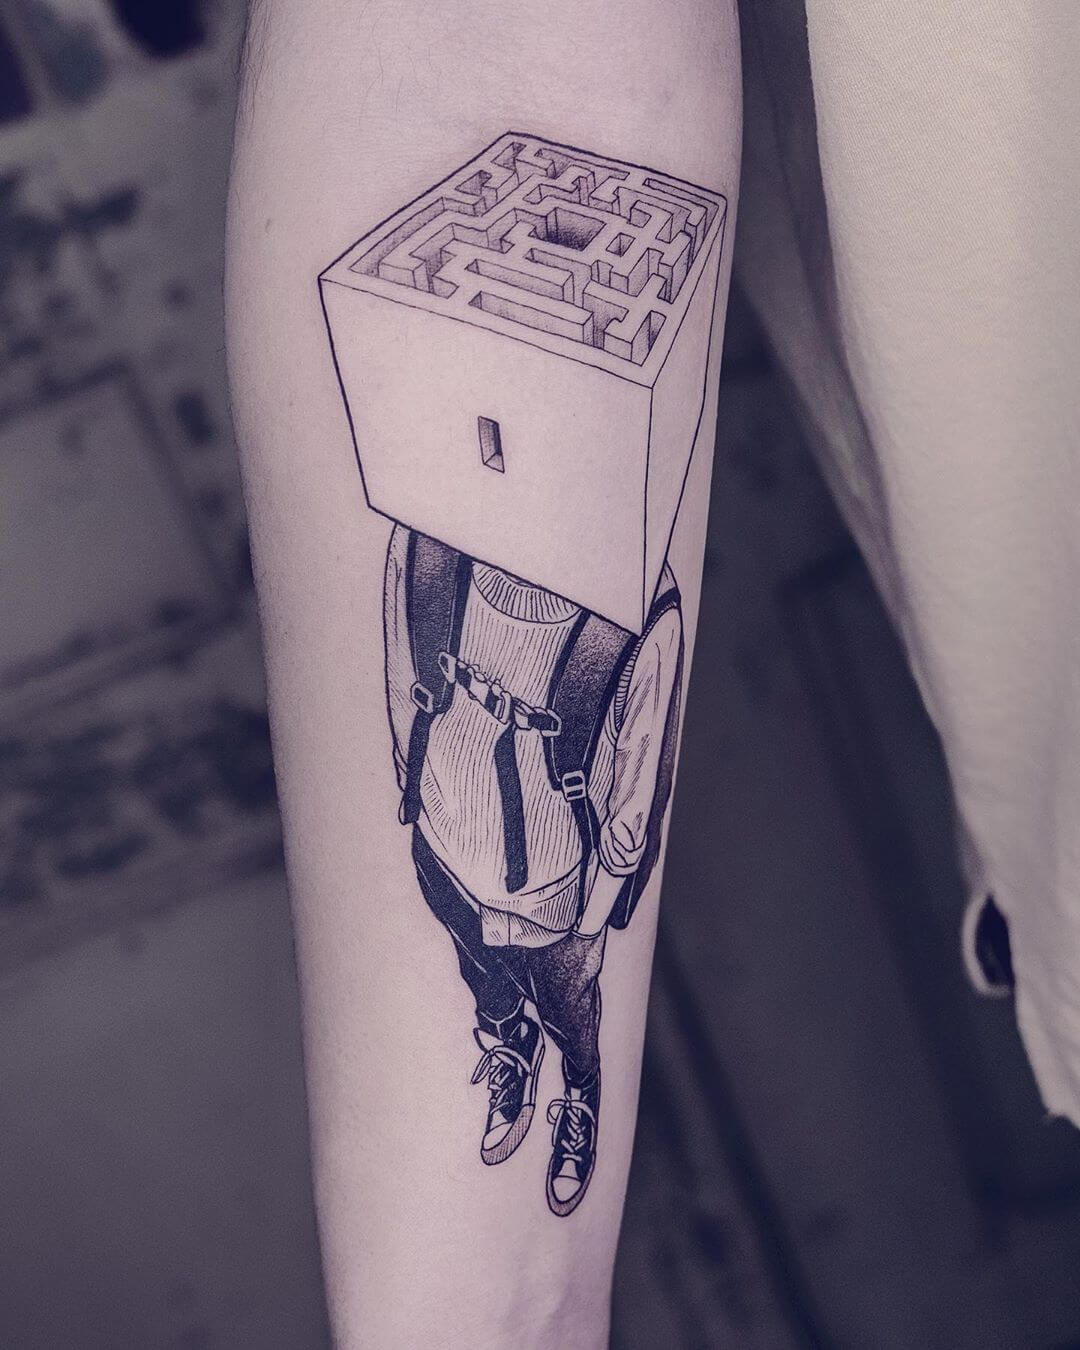 Backpacker with maze for a head, tattoo by Serena Caponera